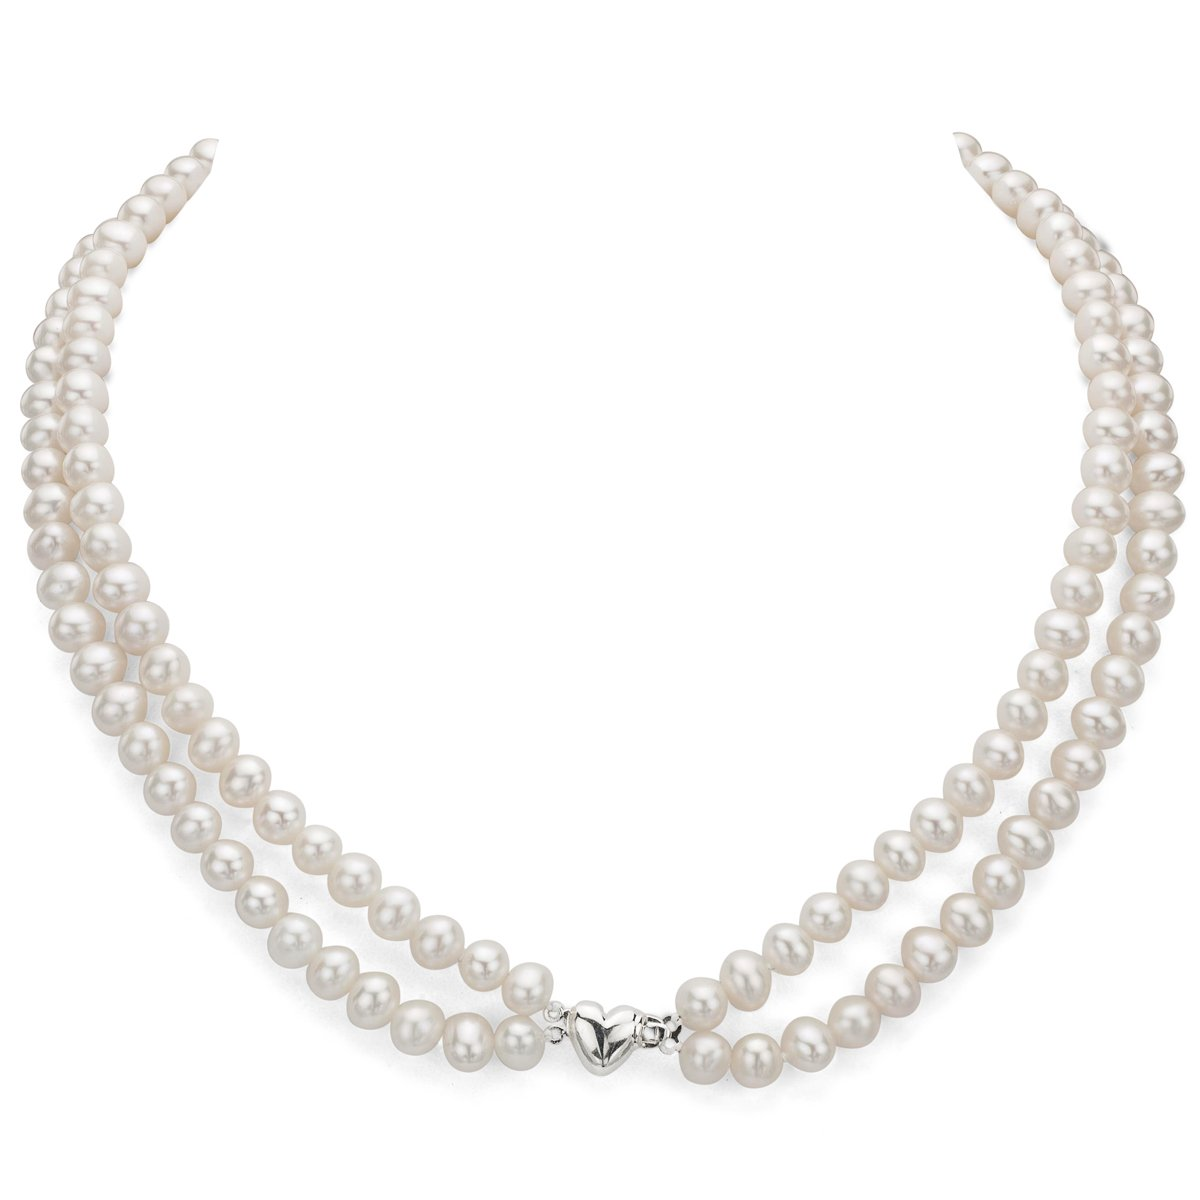 Heart Shape Sterling Silver 2-rows 6-6.5mm White Freshwater Cultured High Luster Pearl Necklace, 17'' by La Regis Jewelry (Image #3)